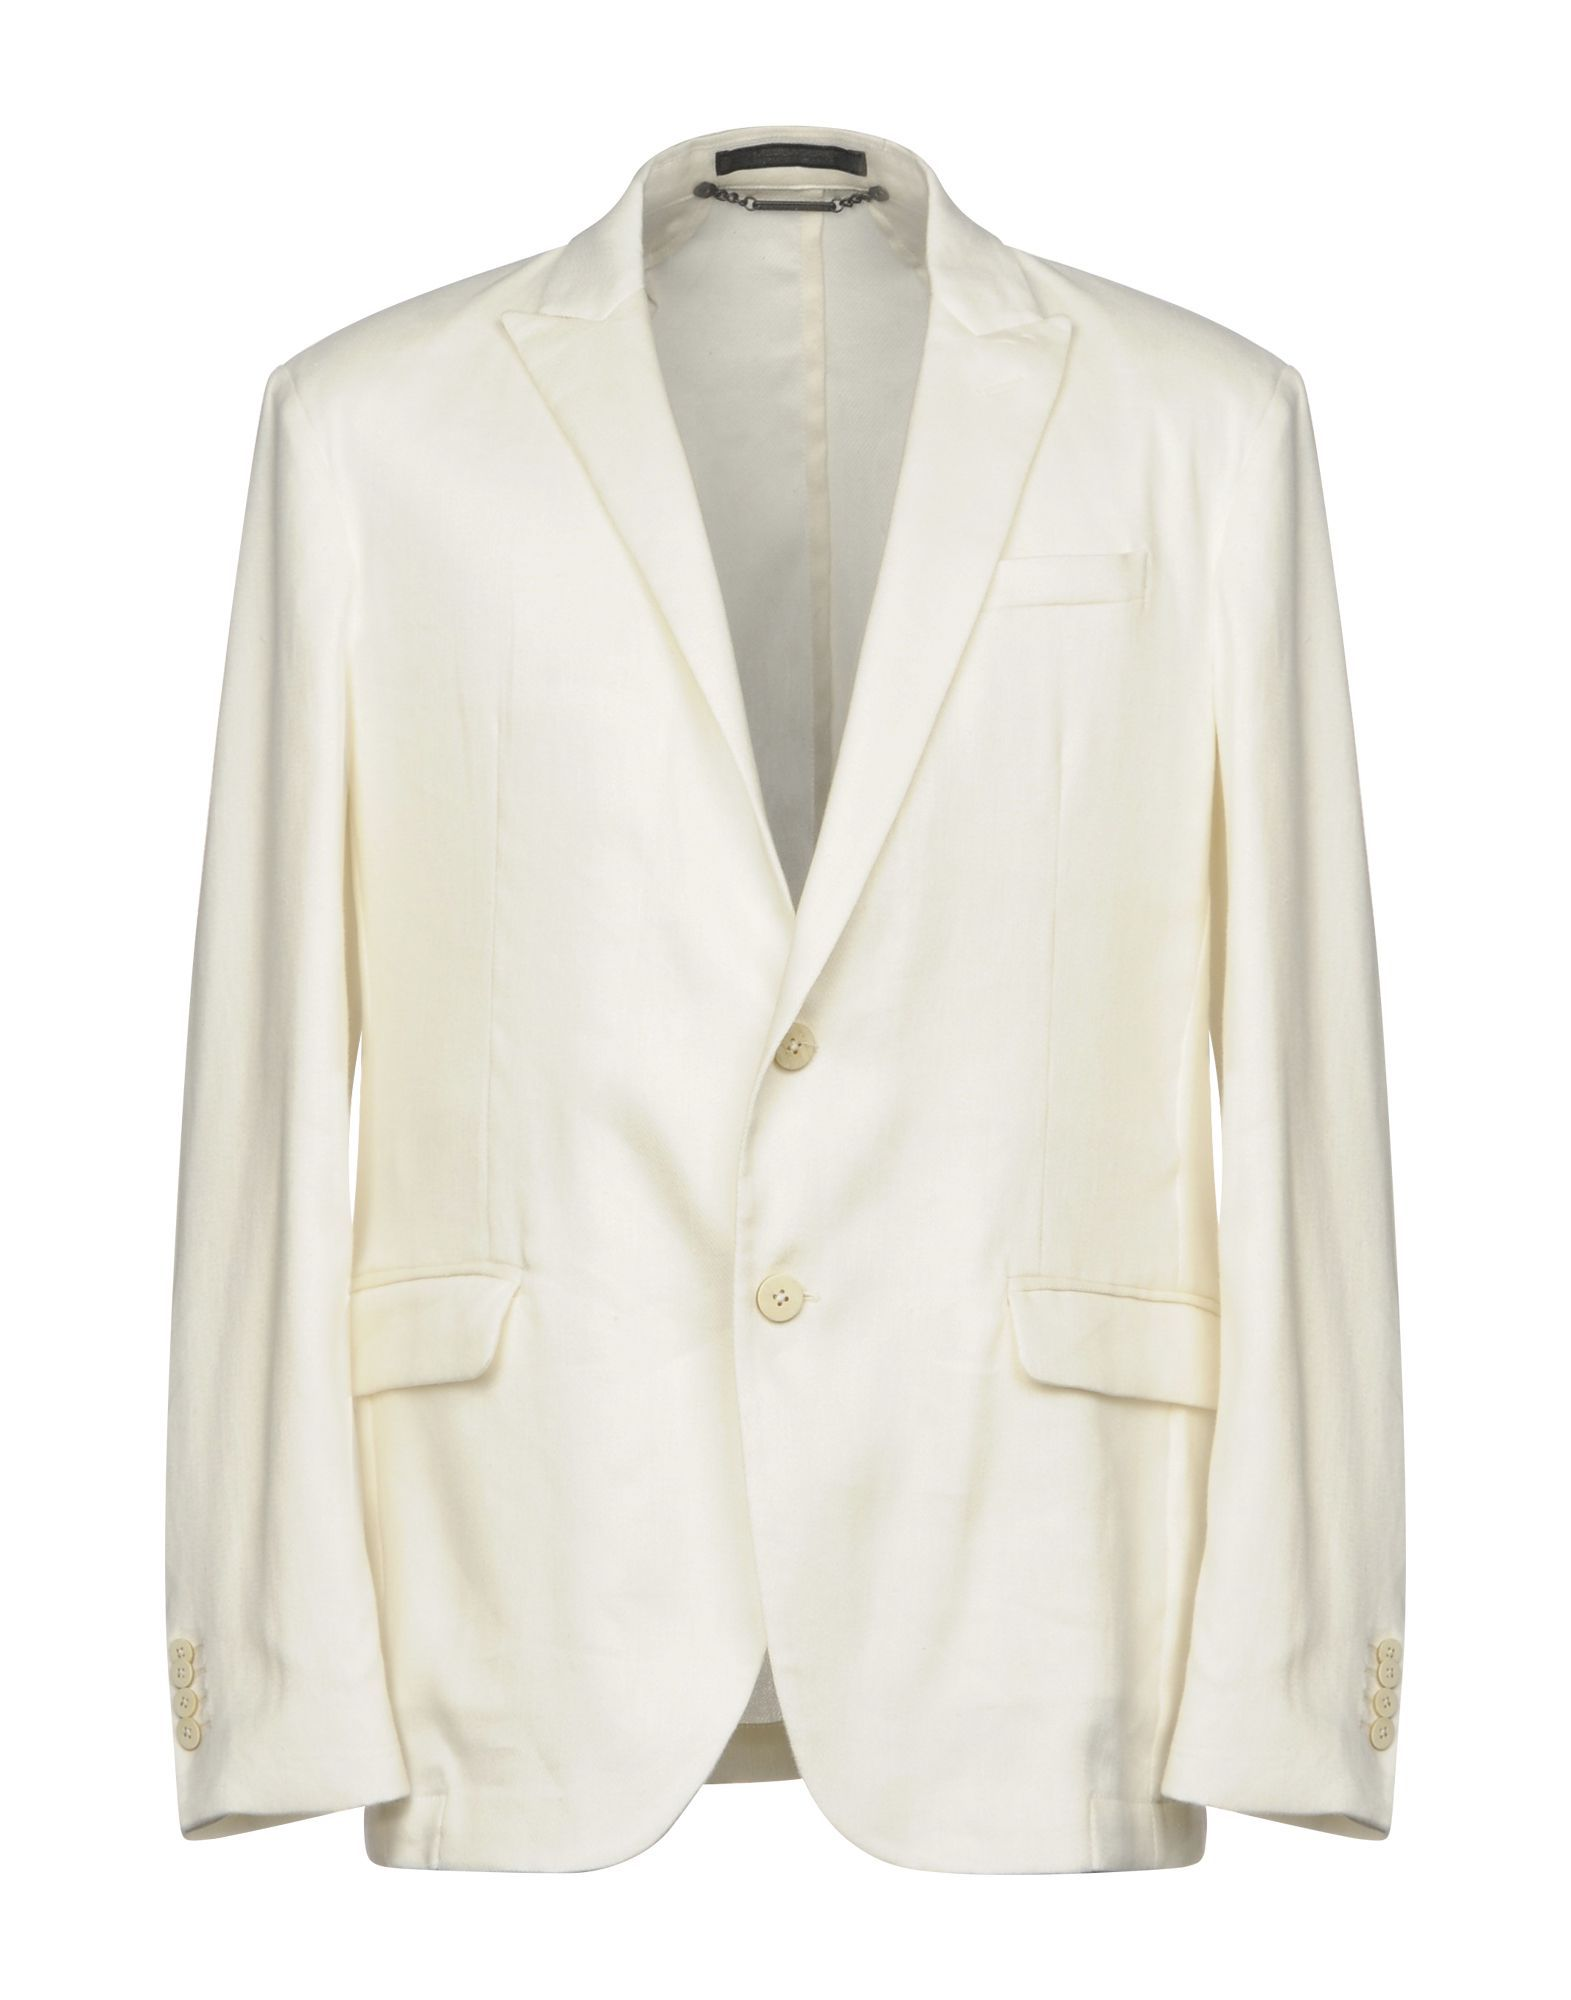 SUITS AND JACKETS Messagerie Ivory Man Linen